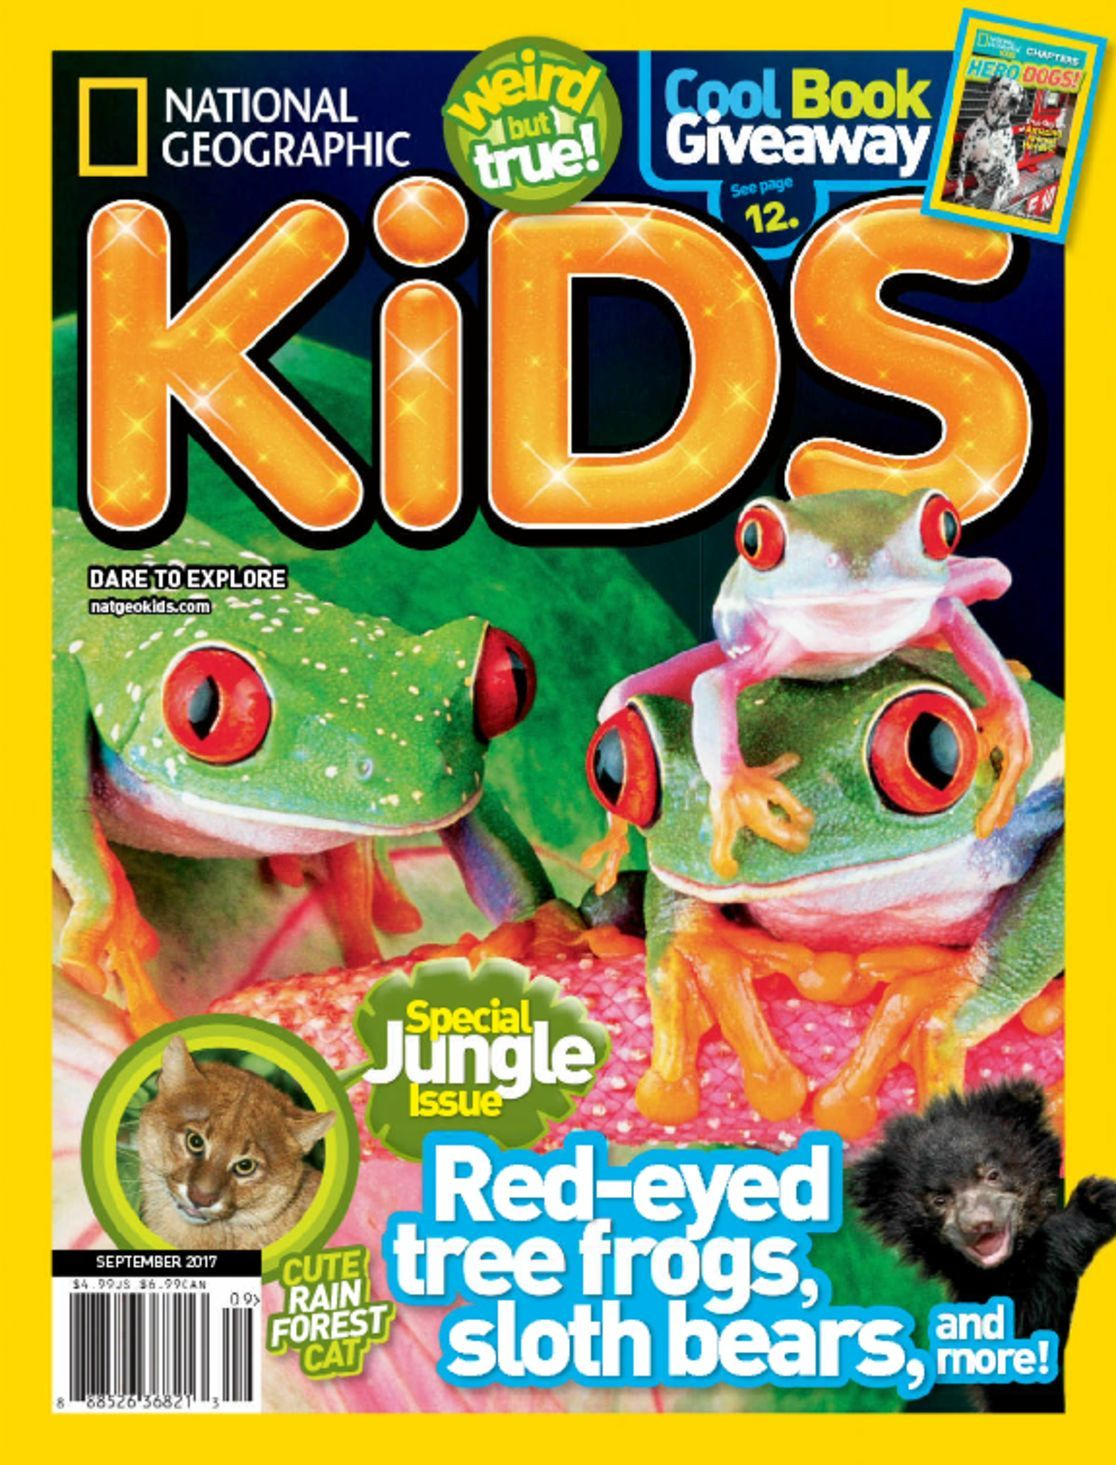 Encourage your little learner with the fun and discovery of National Geographic Little Kids. Created by educators and approved by families worldwide, our magazine is loaded with colorful photographs, read-along stories, baby animals and games, all in a friendly kid-size format.